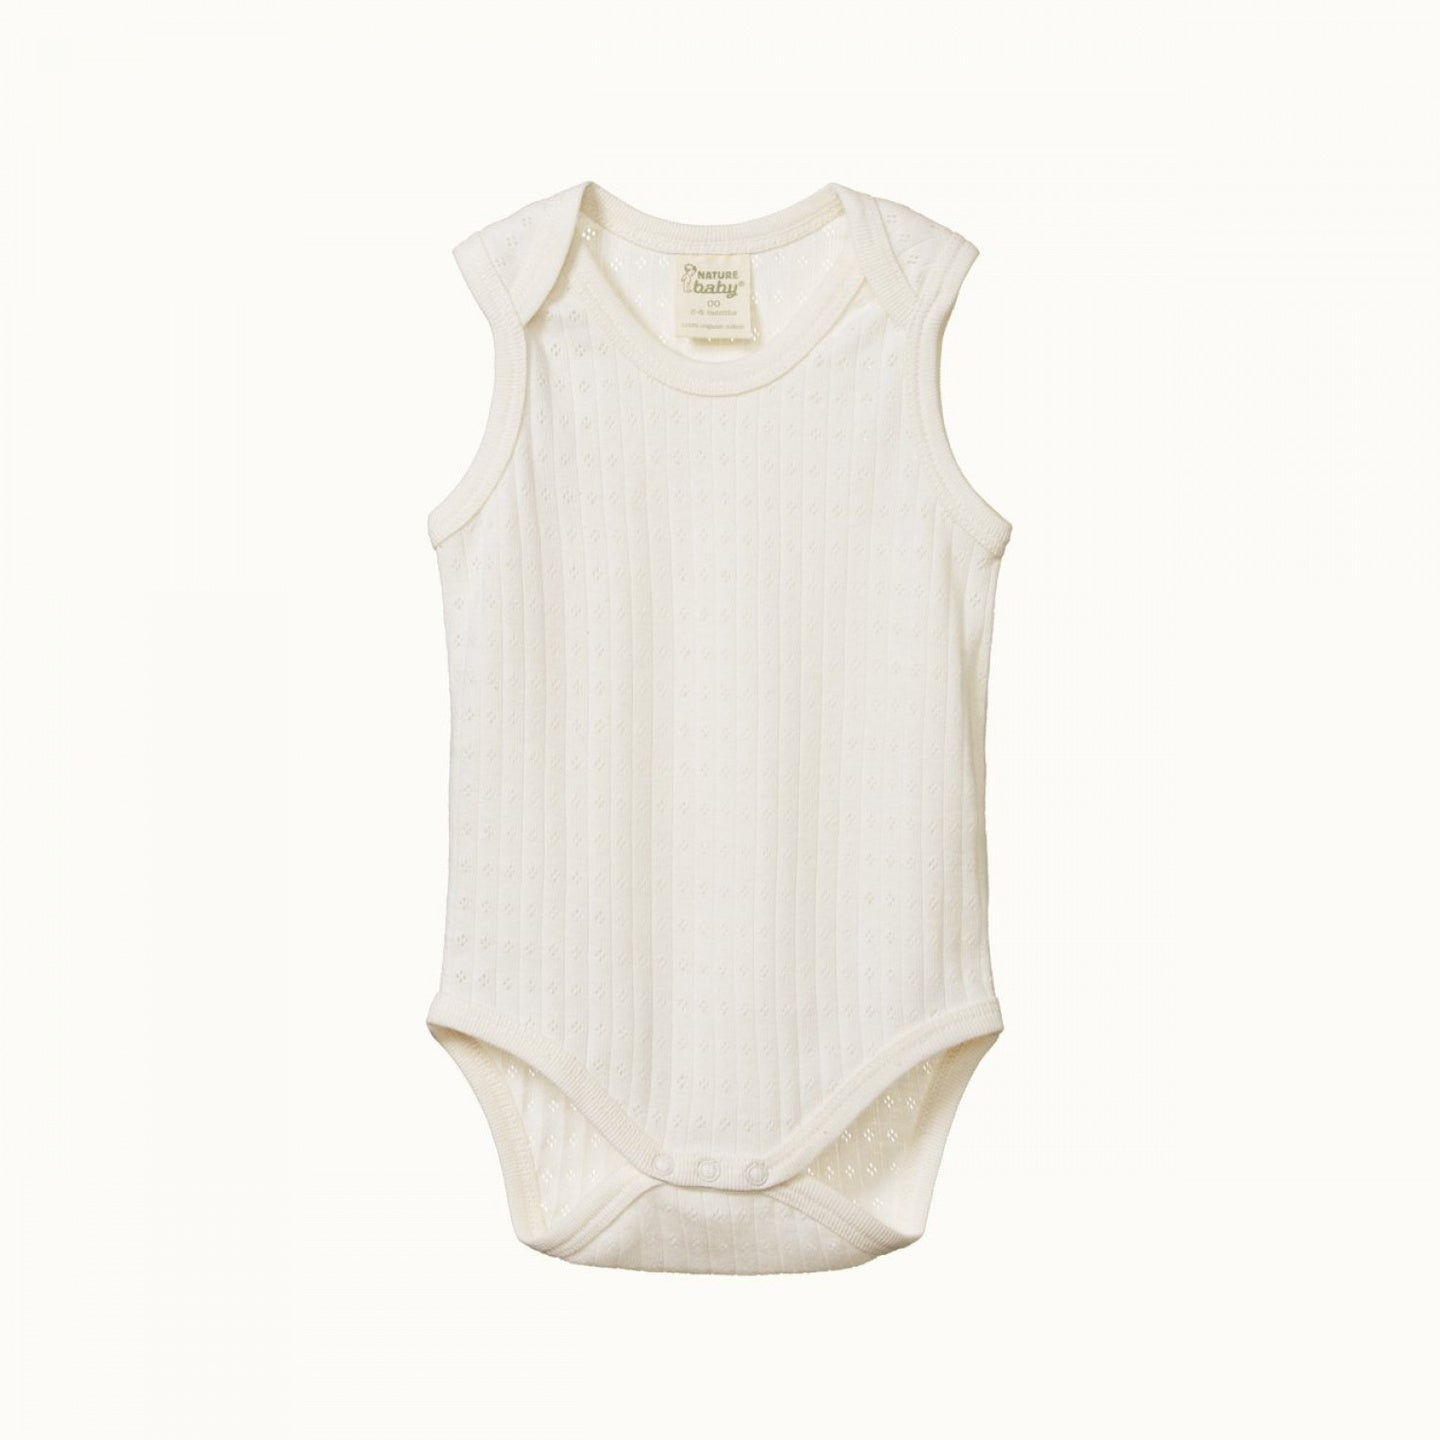 Nature Baby Pointelle Singlet Bodysuit NATURAL